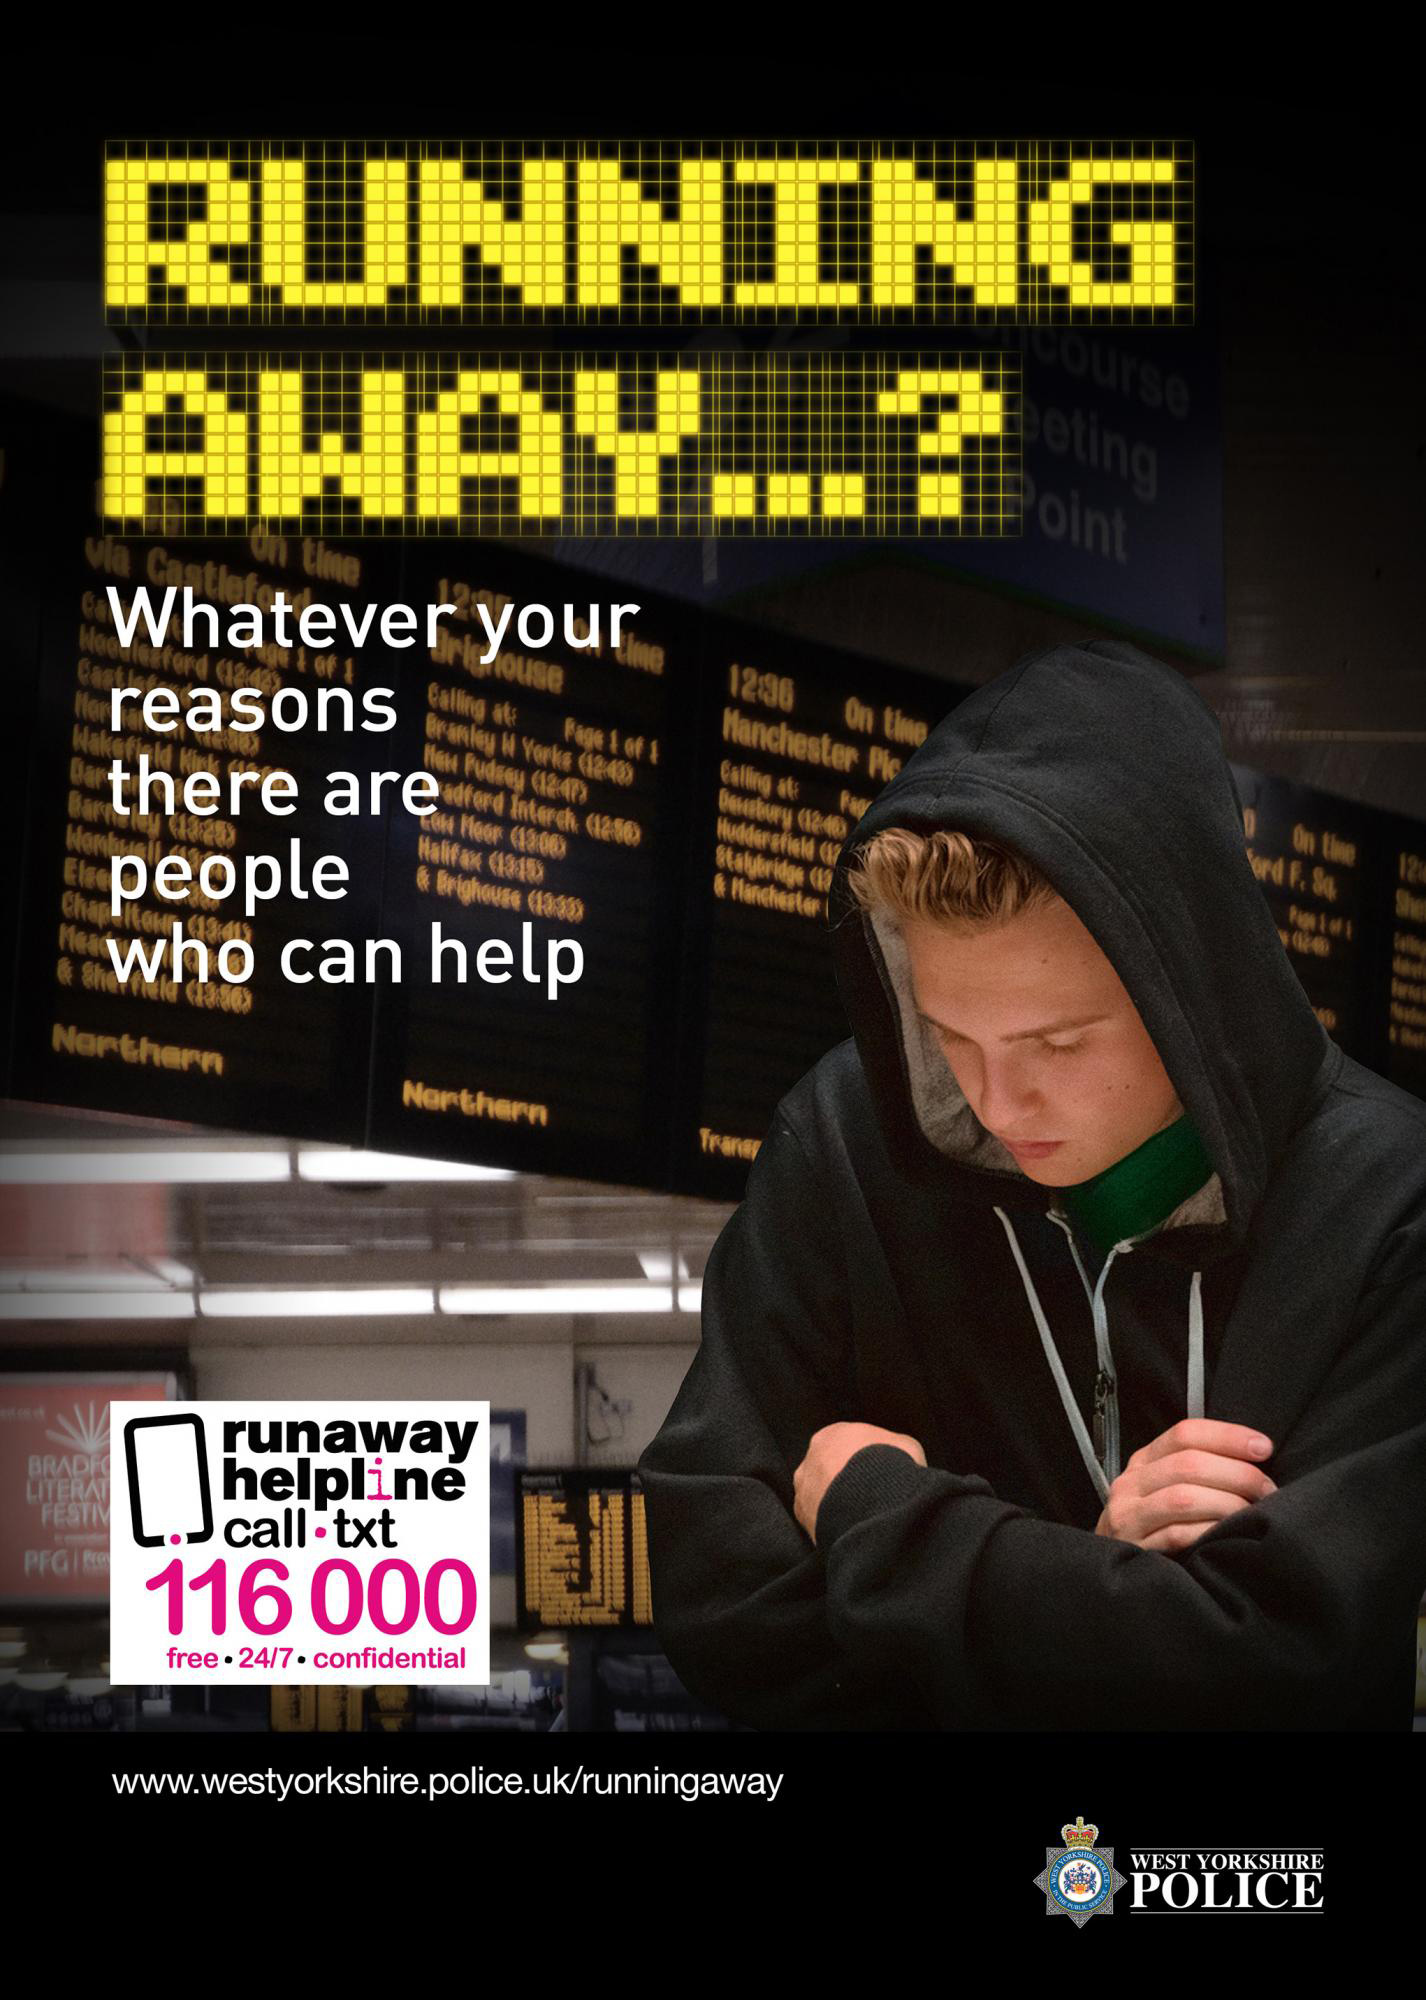 Running away campaign poster